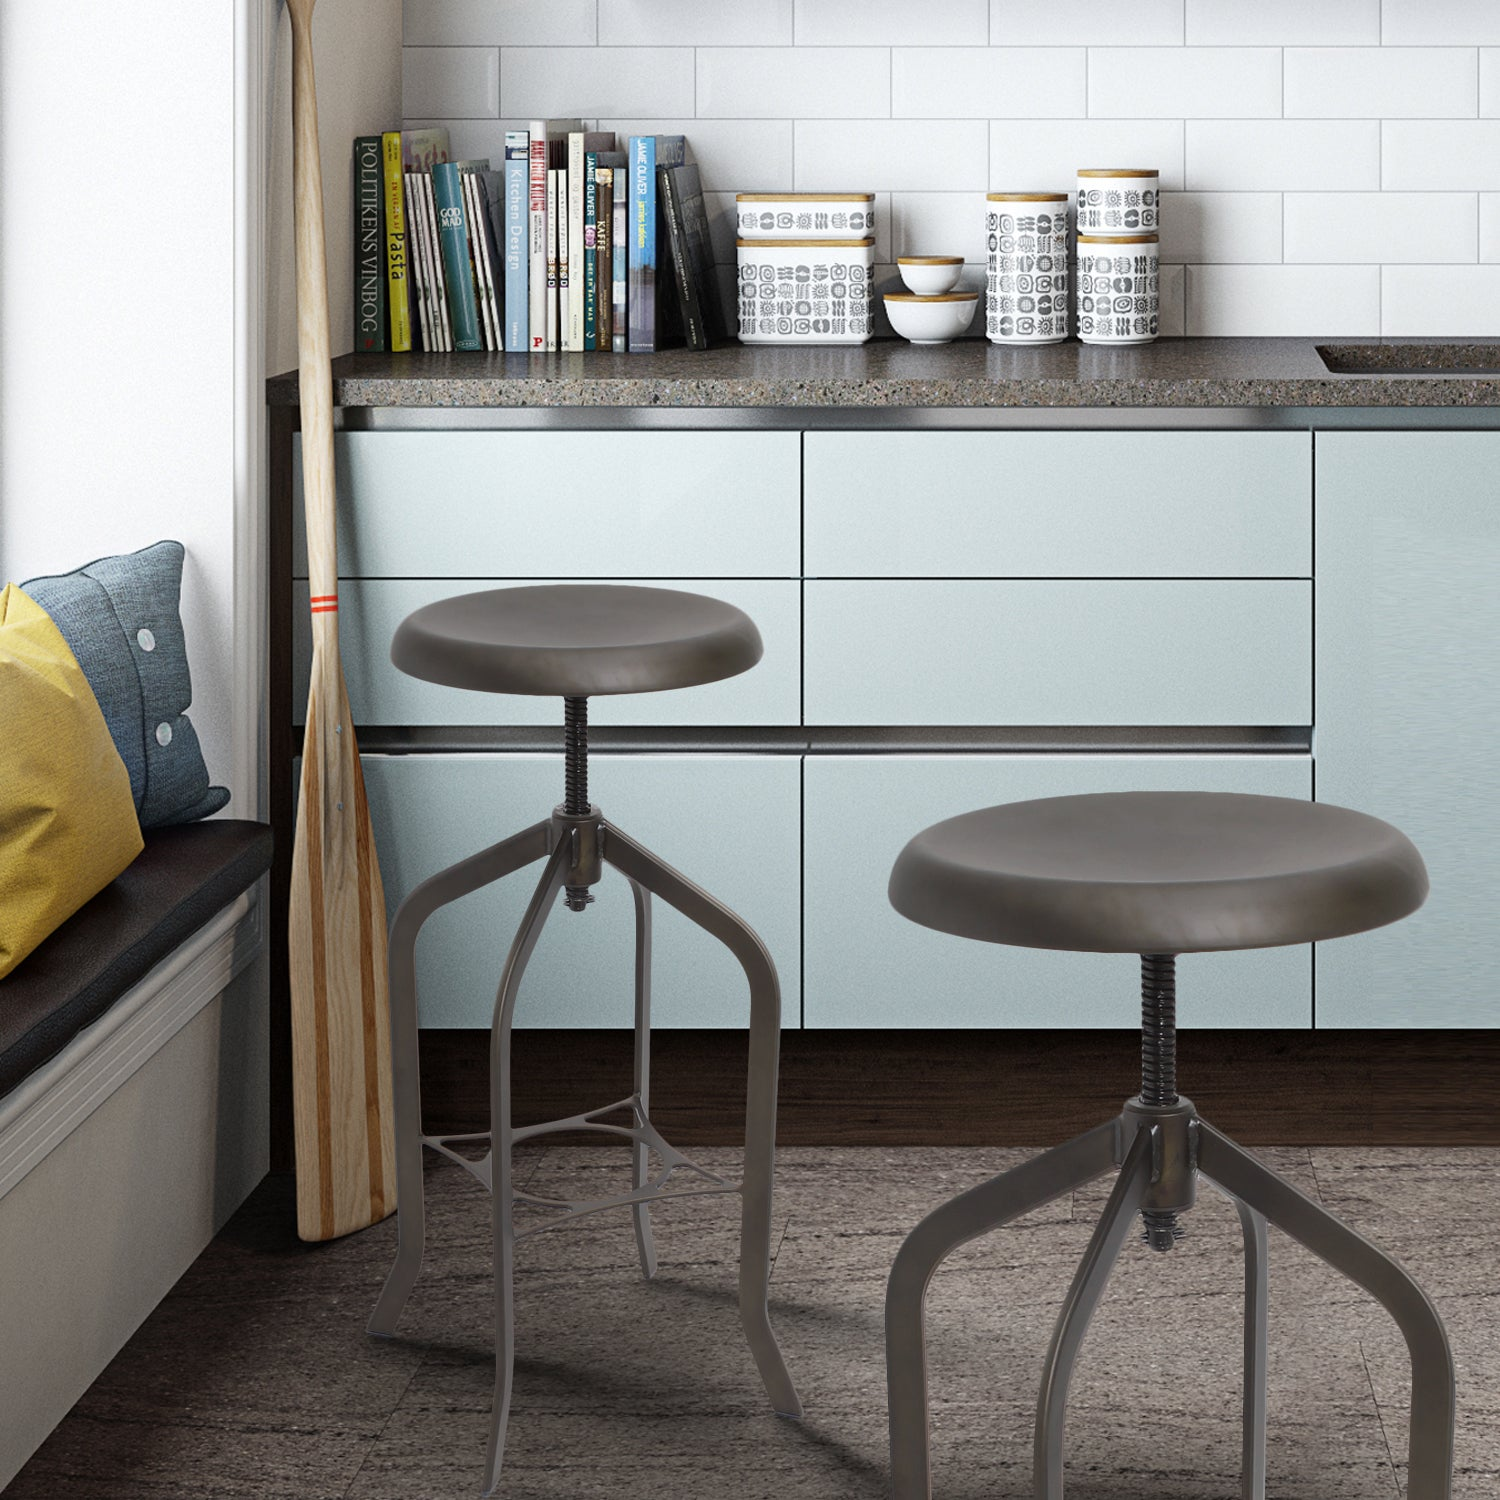 Shop Industrial Style Swivel Bar Stools - Free Shipping Today ...